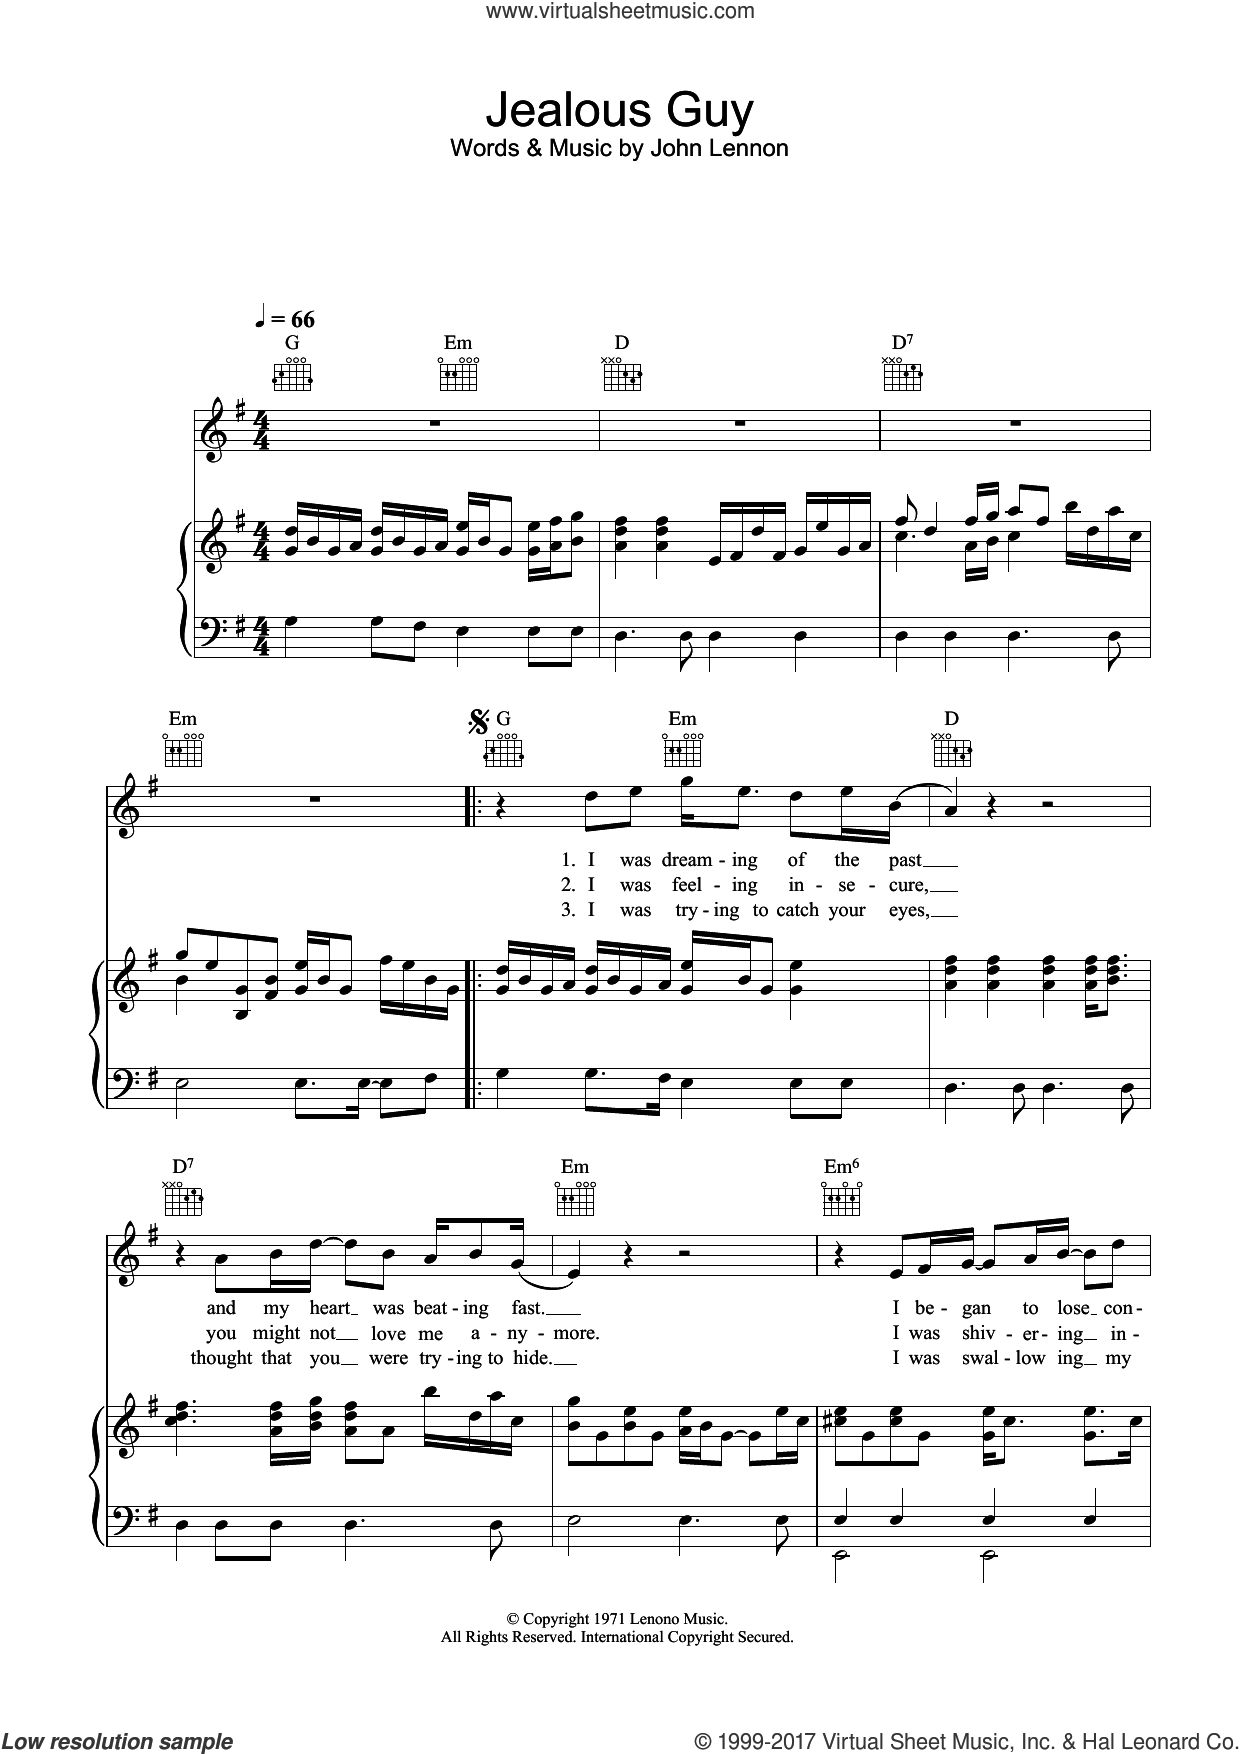 Jealous Guy sheet music for voice, piano or guitar by John Lennon, intermediate skill level